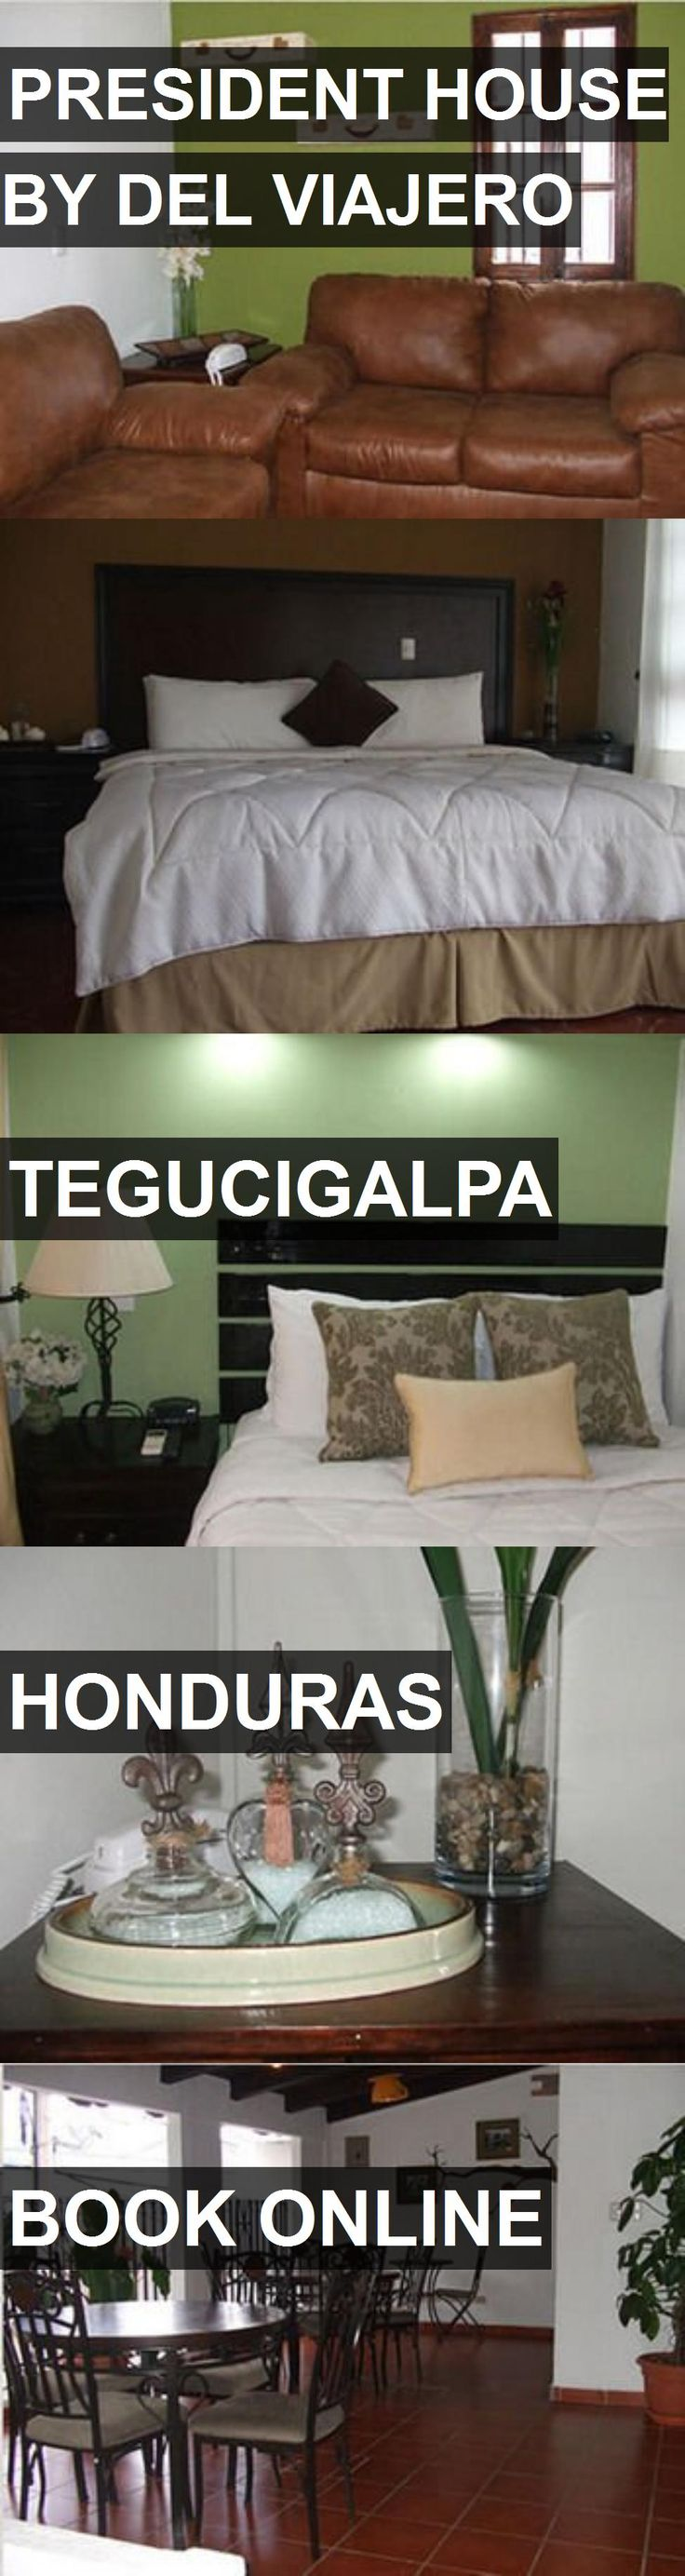 Hotel PRESIDENT HOUSE BY DEL VIAJERO in Tegucigalpa, Honduras. For more information, photos, reviews and best prices please follow the link. #Honduras #Tegucigalpa #PRESIDENTHOUSEBYDELVIAJERO #hotel #travel #vacation